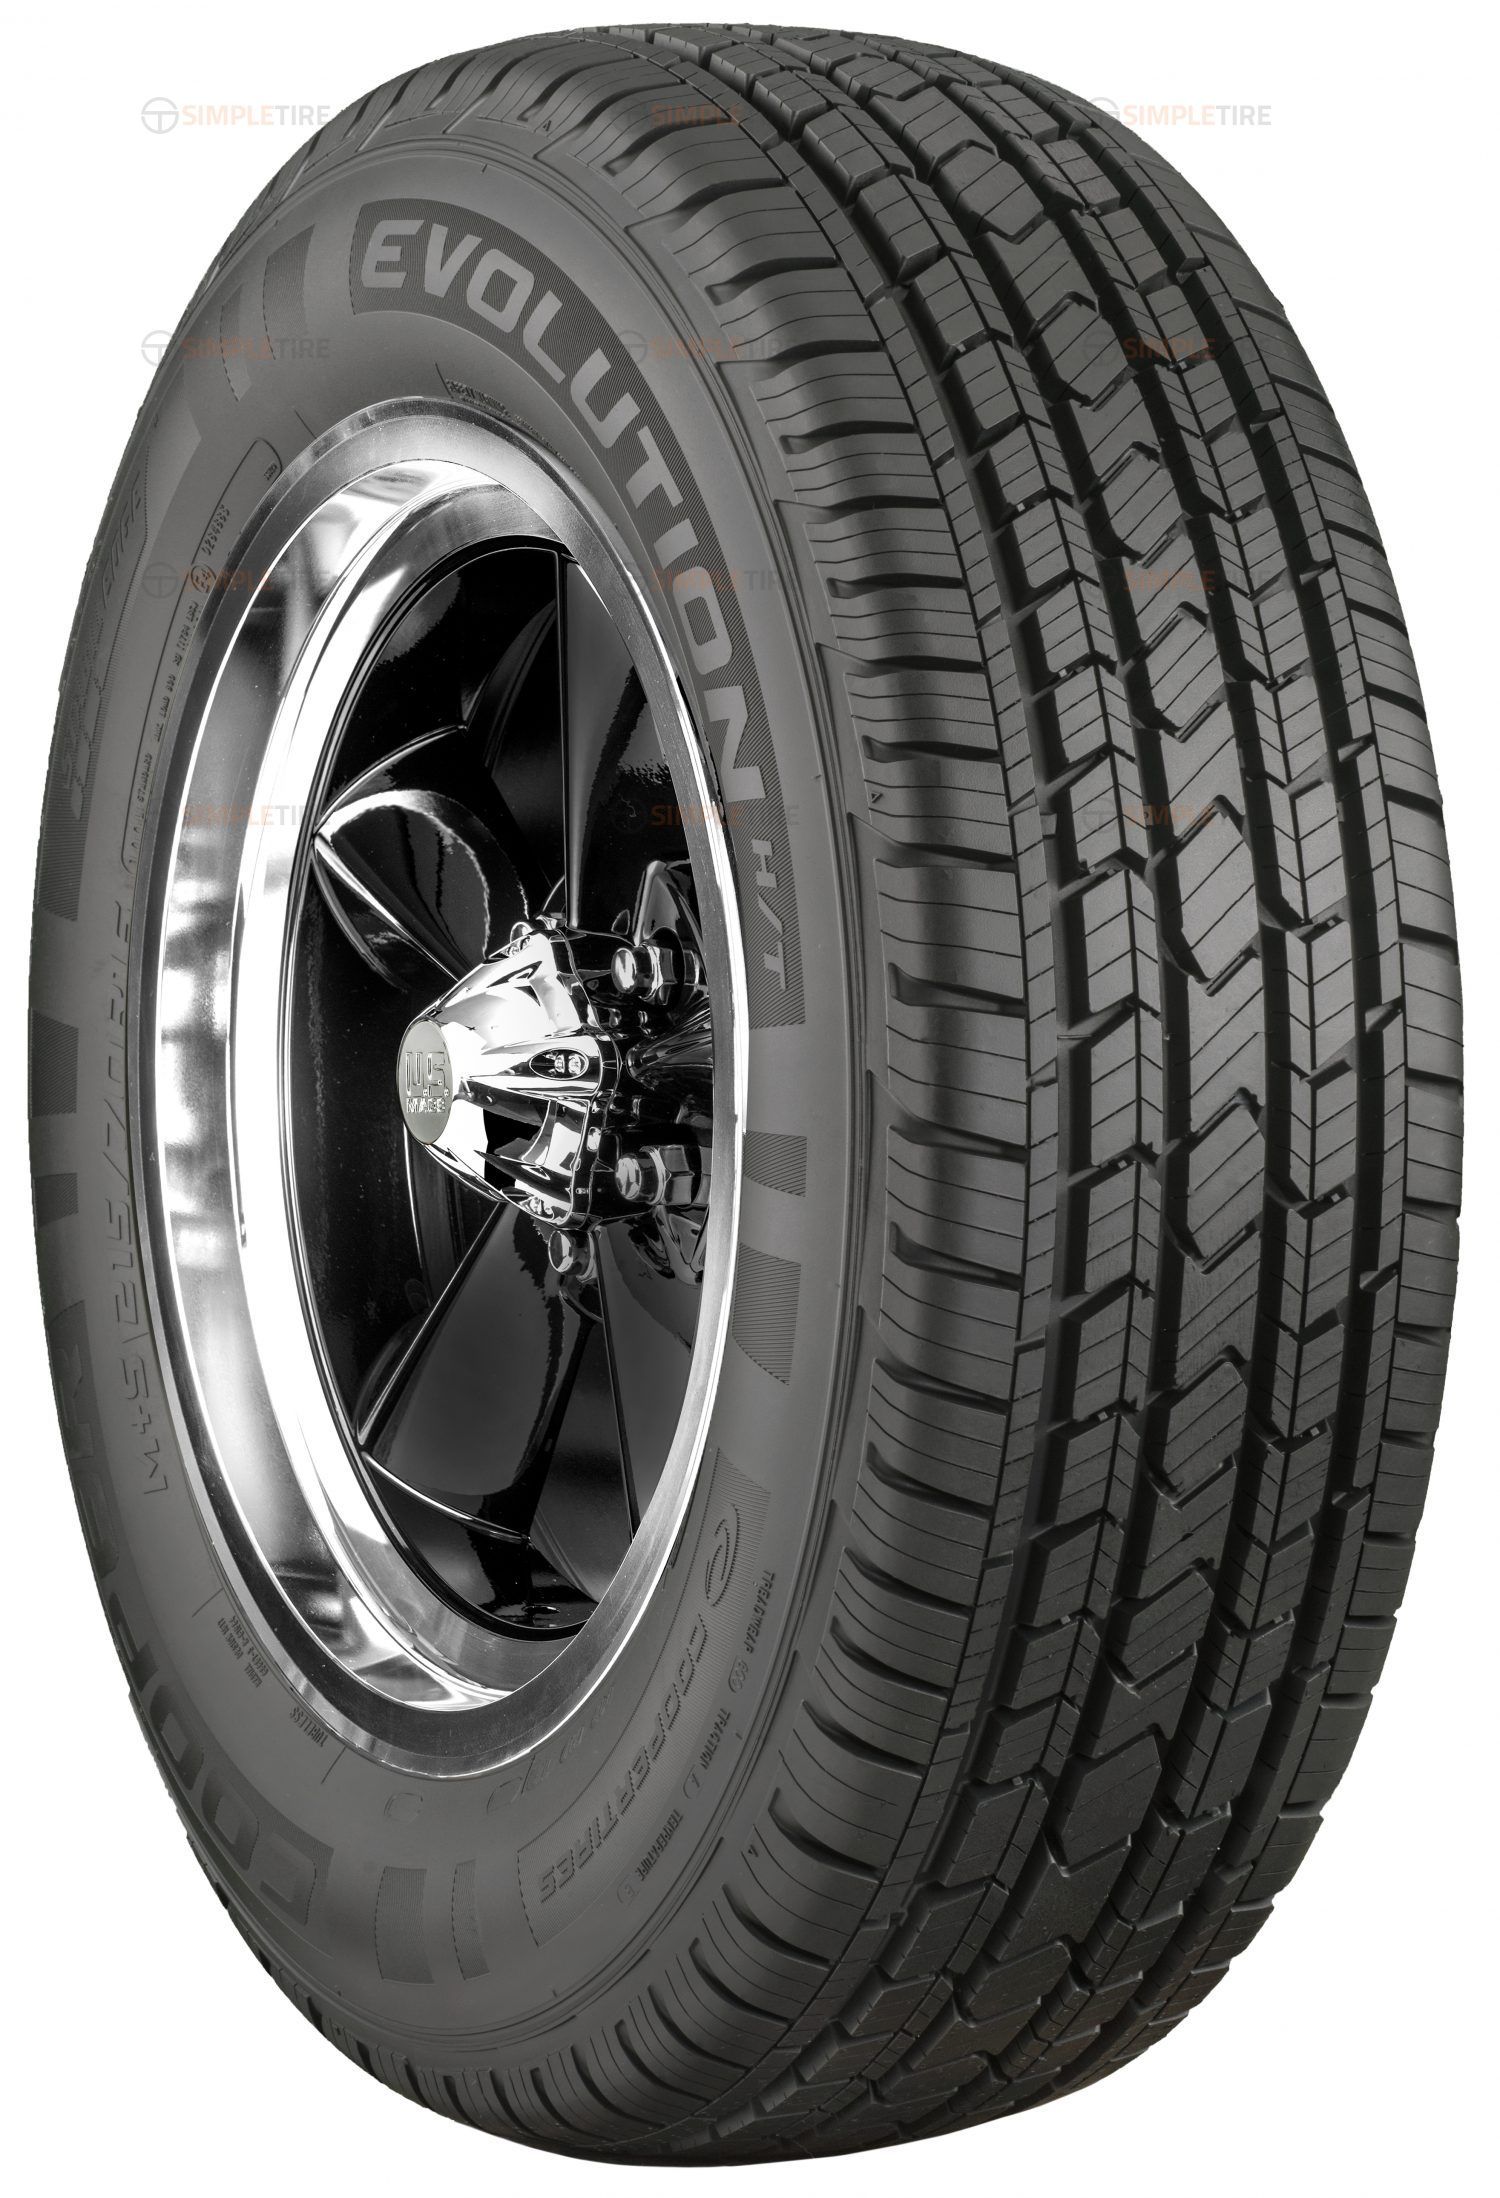 90000029115 265/50R20 Evolution HT Cooper